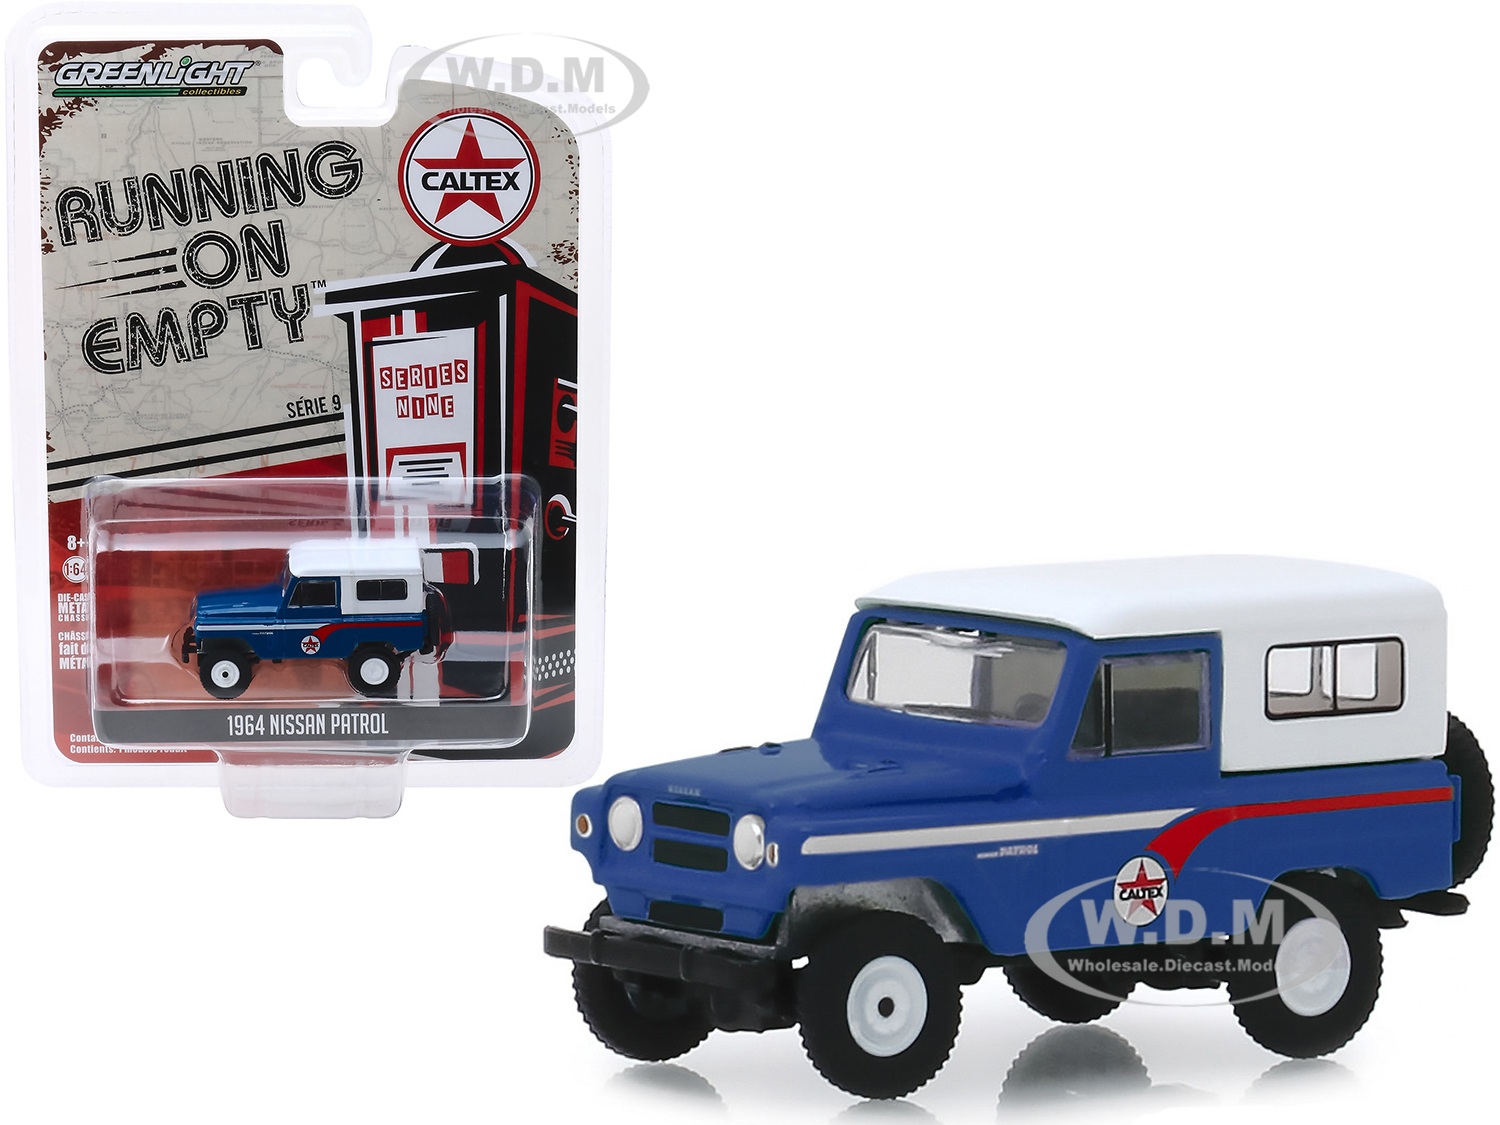 1964 Nissan Patrol Blue with White Top Caltex Running on Empty Series 9 1/64 Diecast Model Car by Greenlight